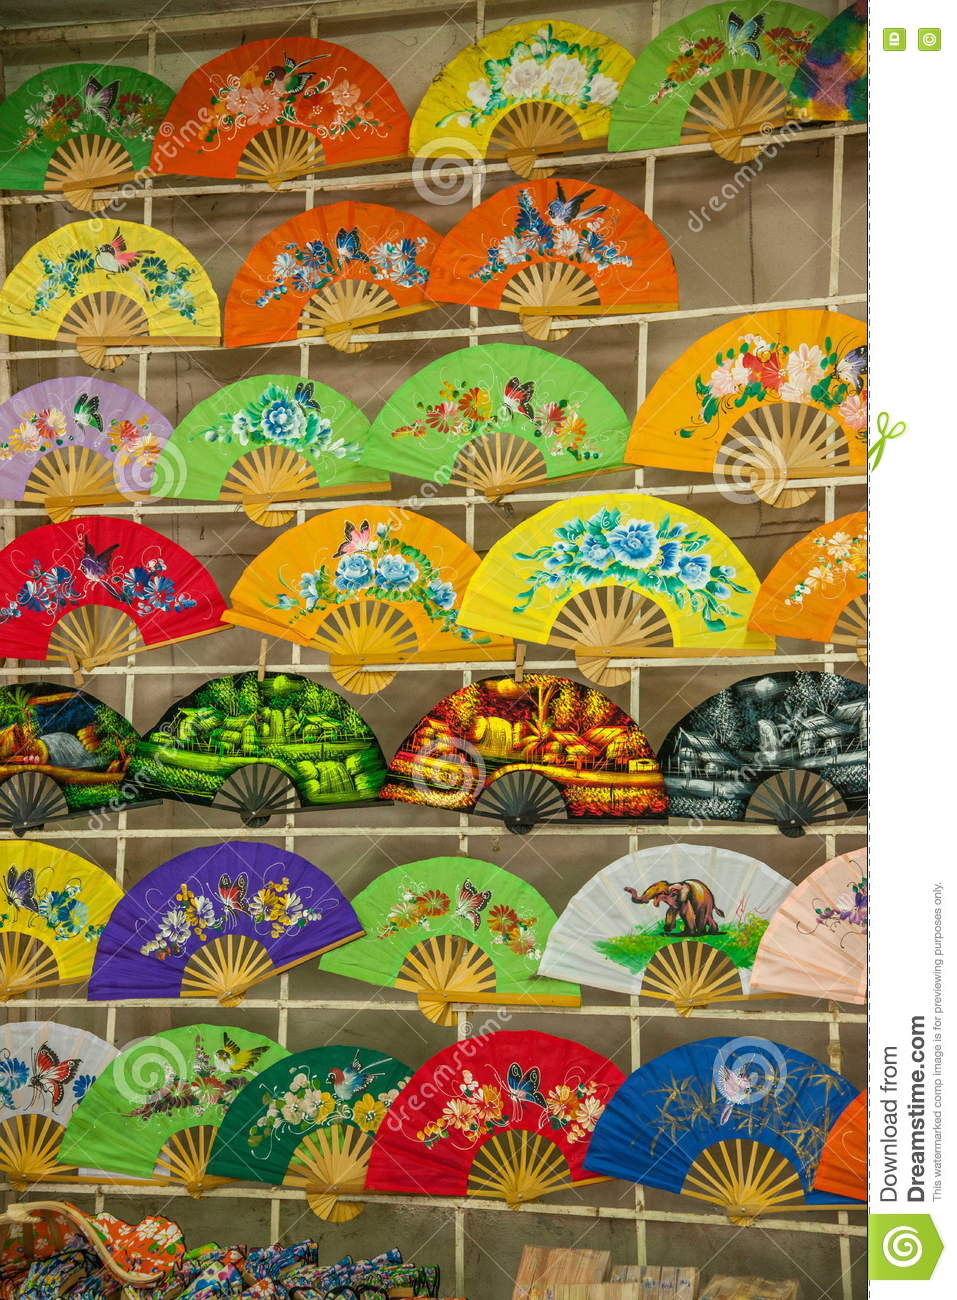 Chiang Mai Thailand Handmade Fan Stock Photo Image Of Images Antiques 76320748